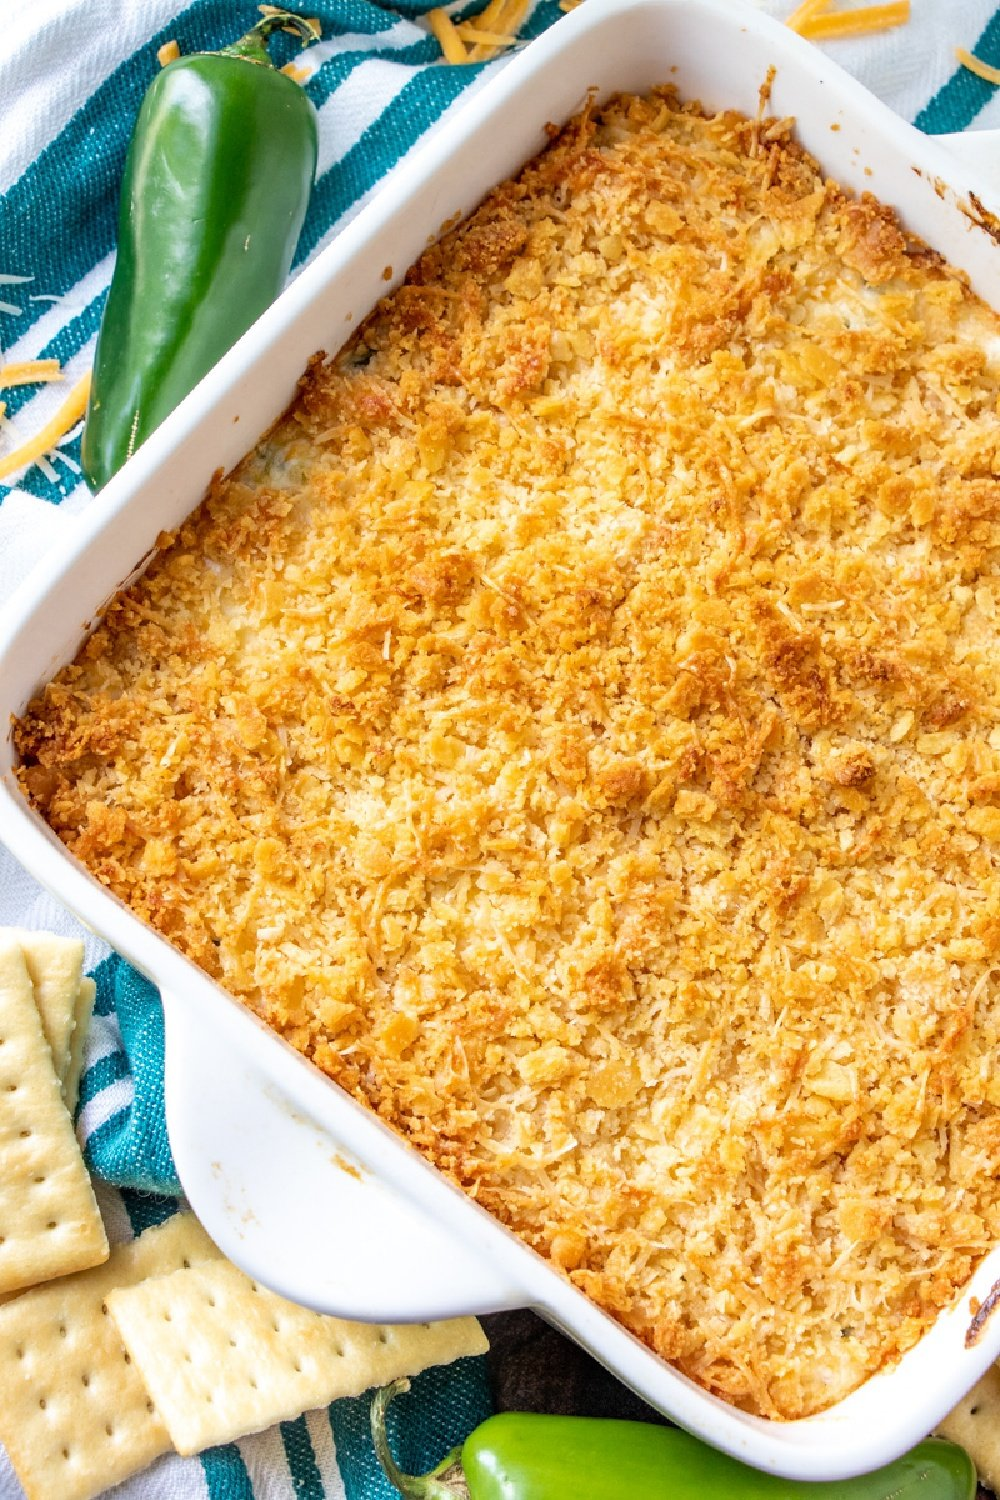 Baked Jalapeno Dip in a white baking dish